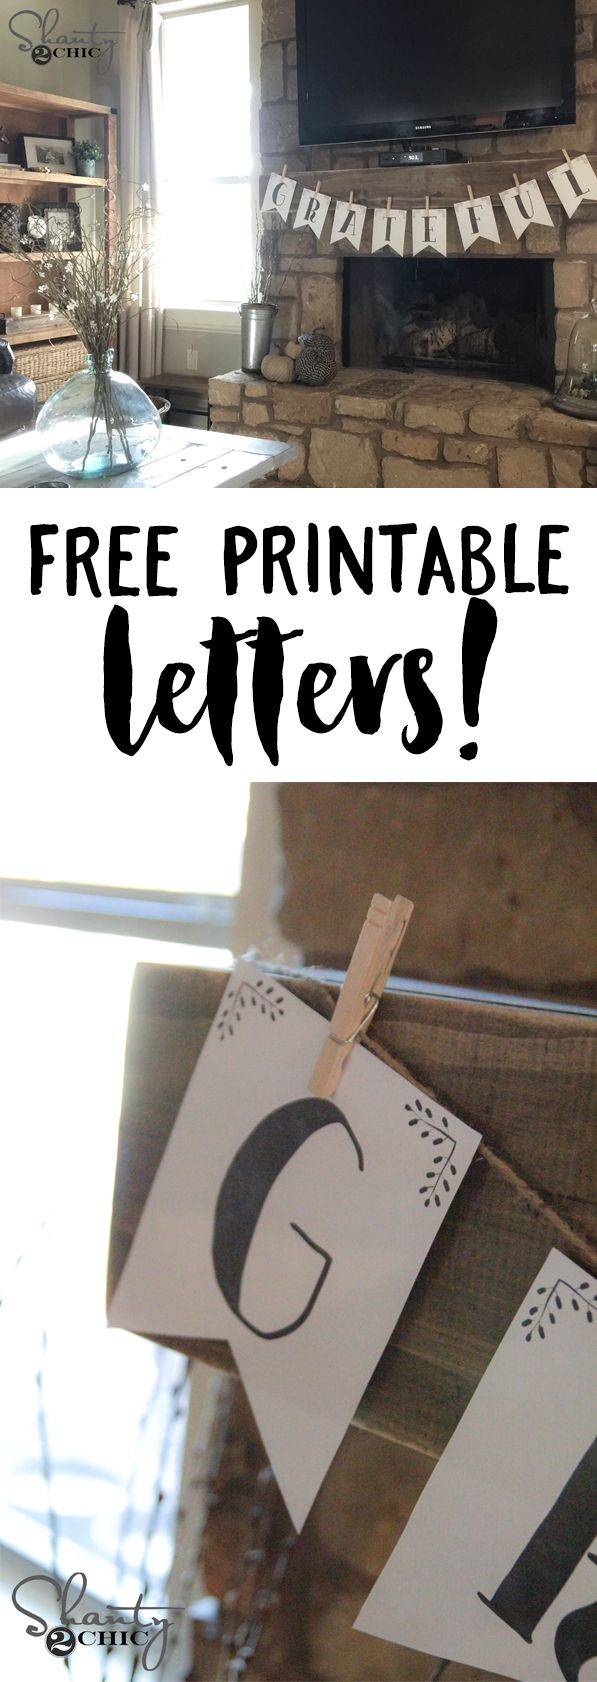 Free Printable Letter Banners Shanty S Tutorials Printable